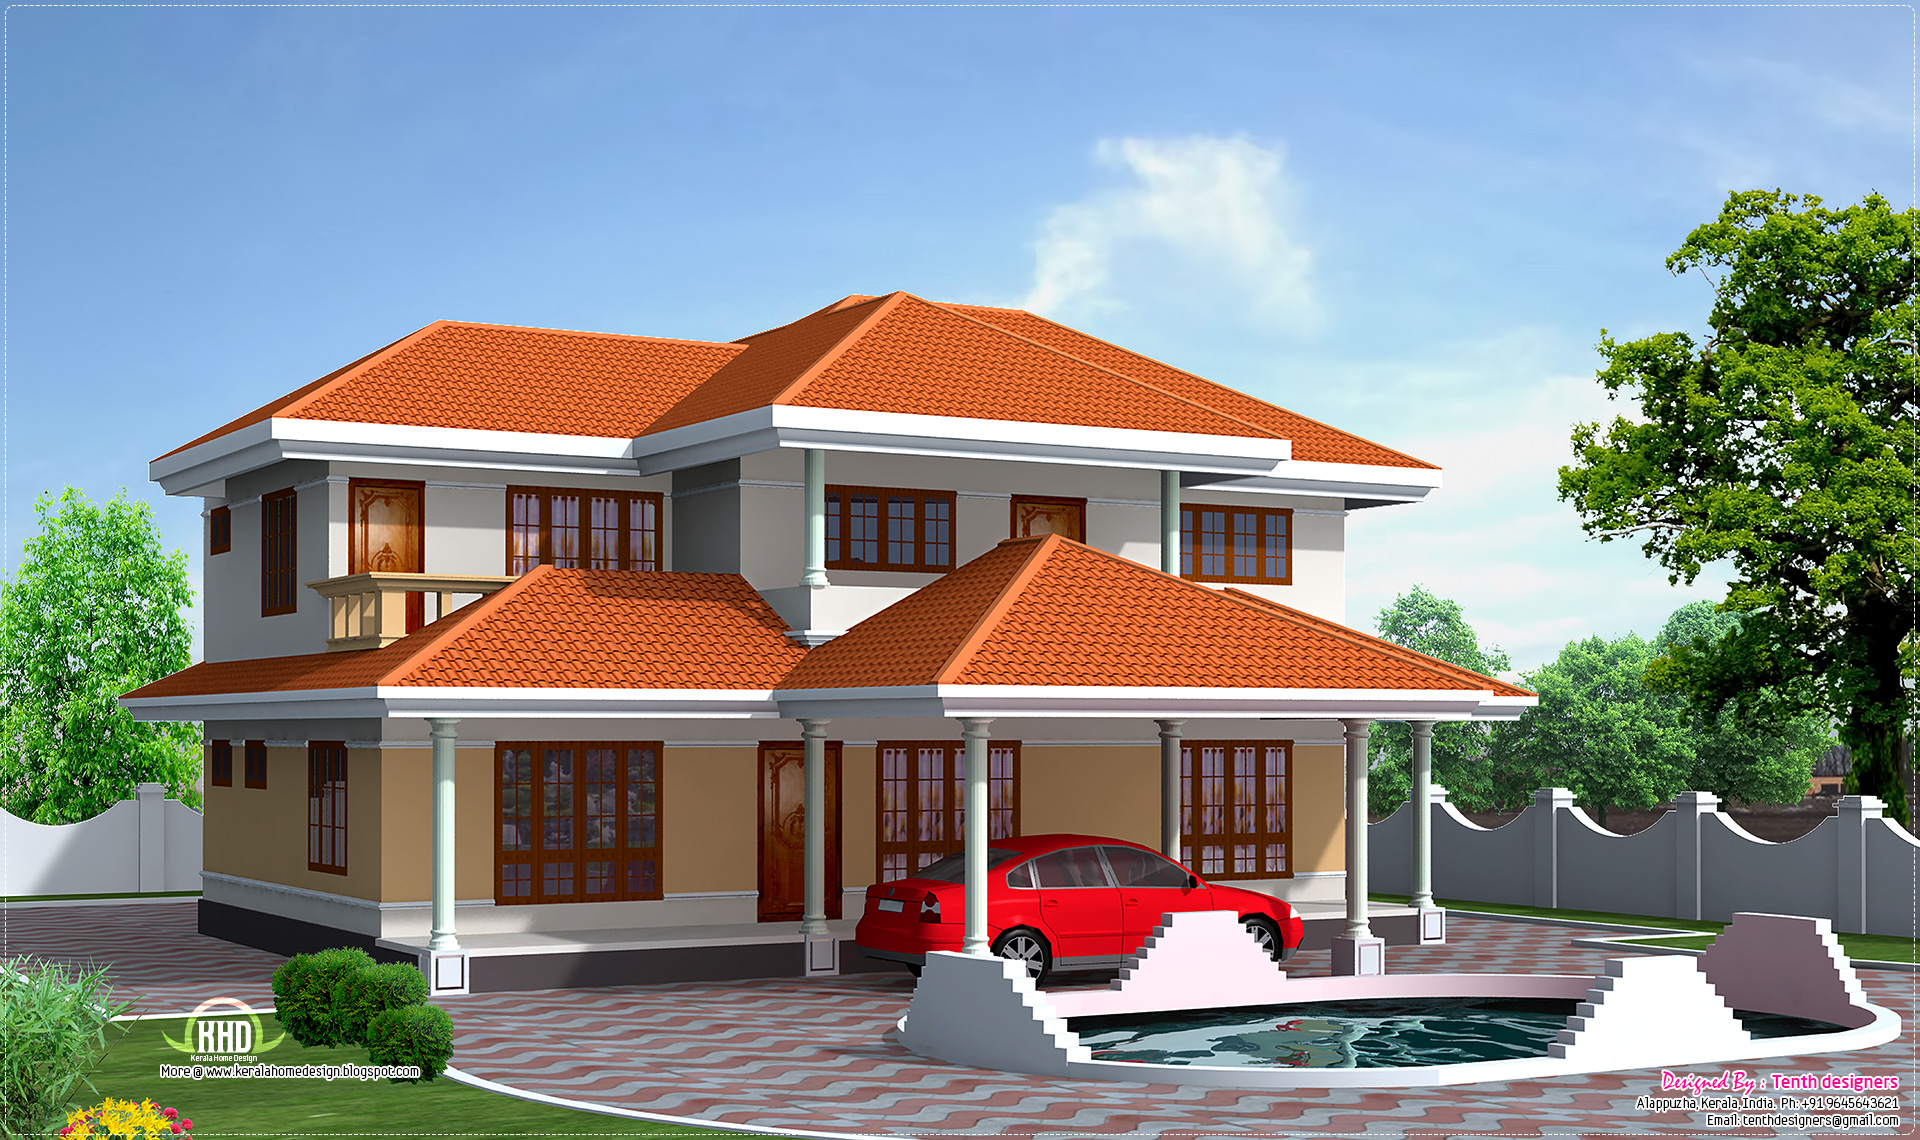 Four bedroom house elevation in 2500 sq feet kerala for 2500 sq ft house plans in kerala